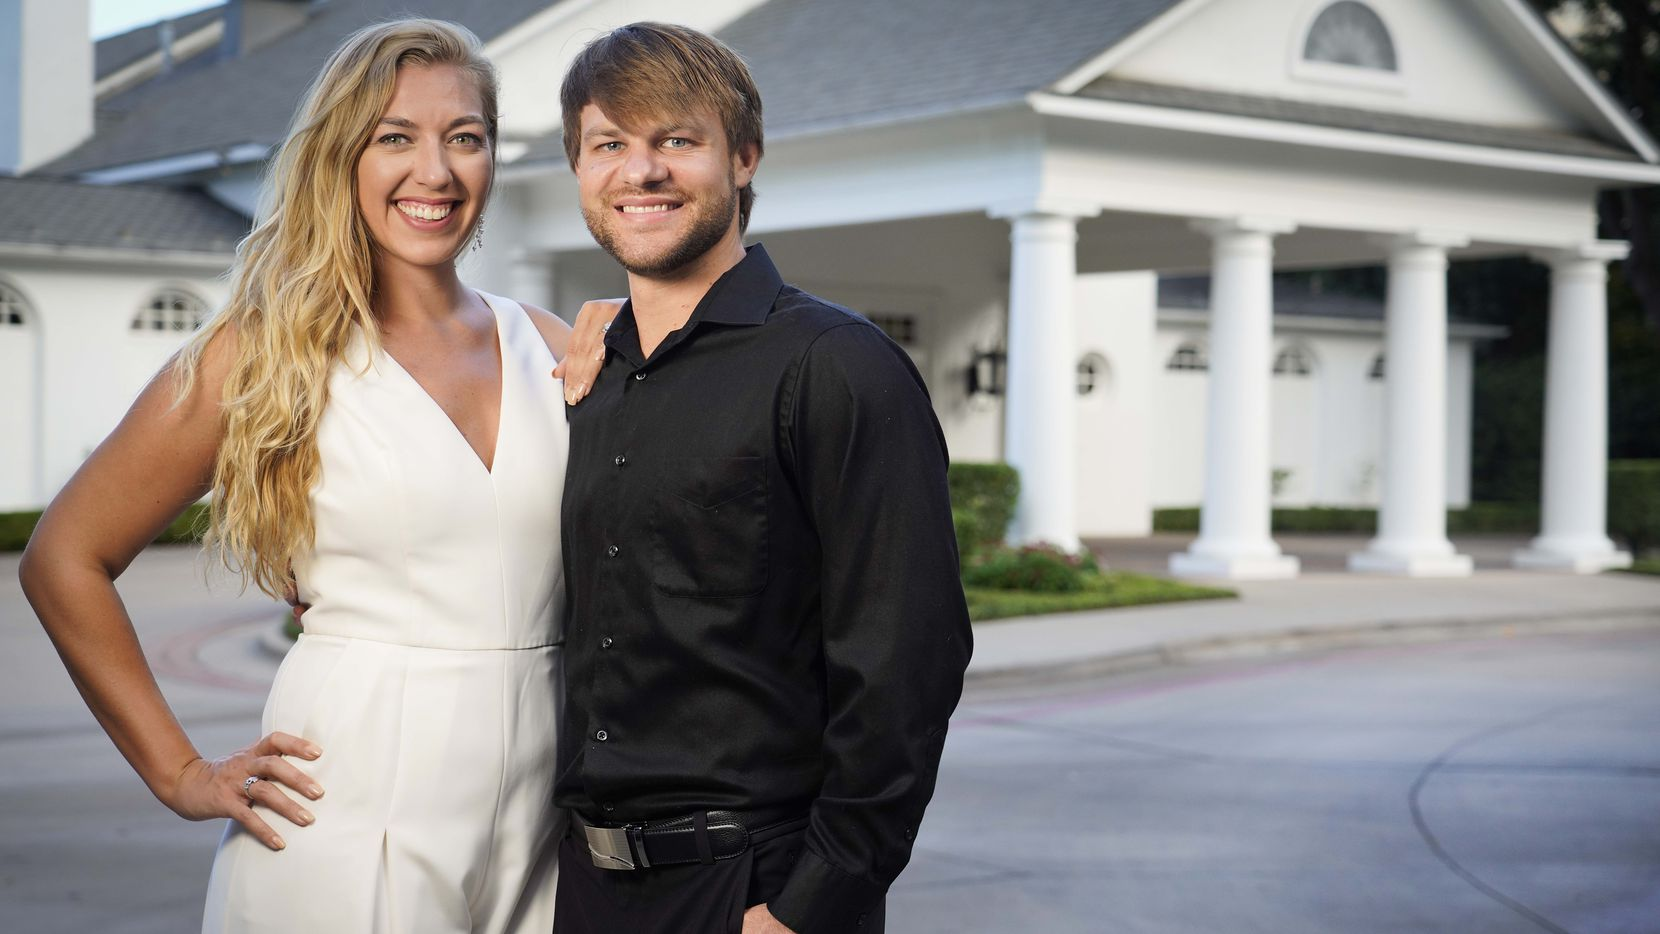 Christine and Daniel Twito postponed their wedding once but decided to move ahead in June with a smaller ceremony at Arlington Hall at Turtle Creek Park in Dallas.